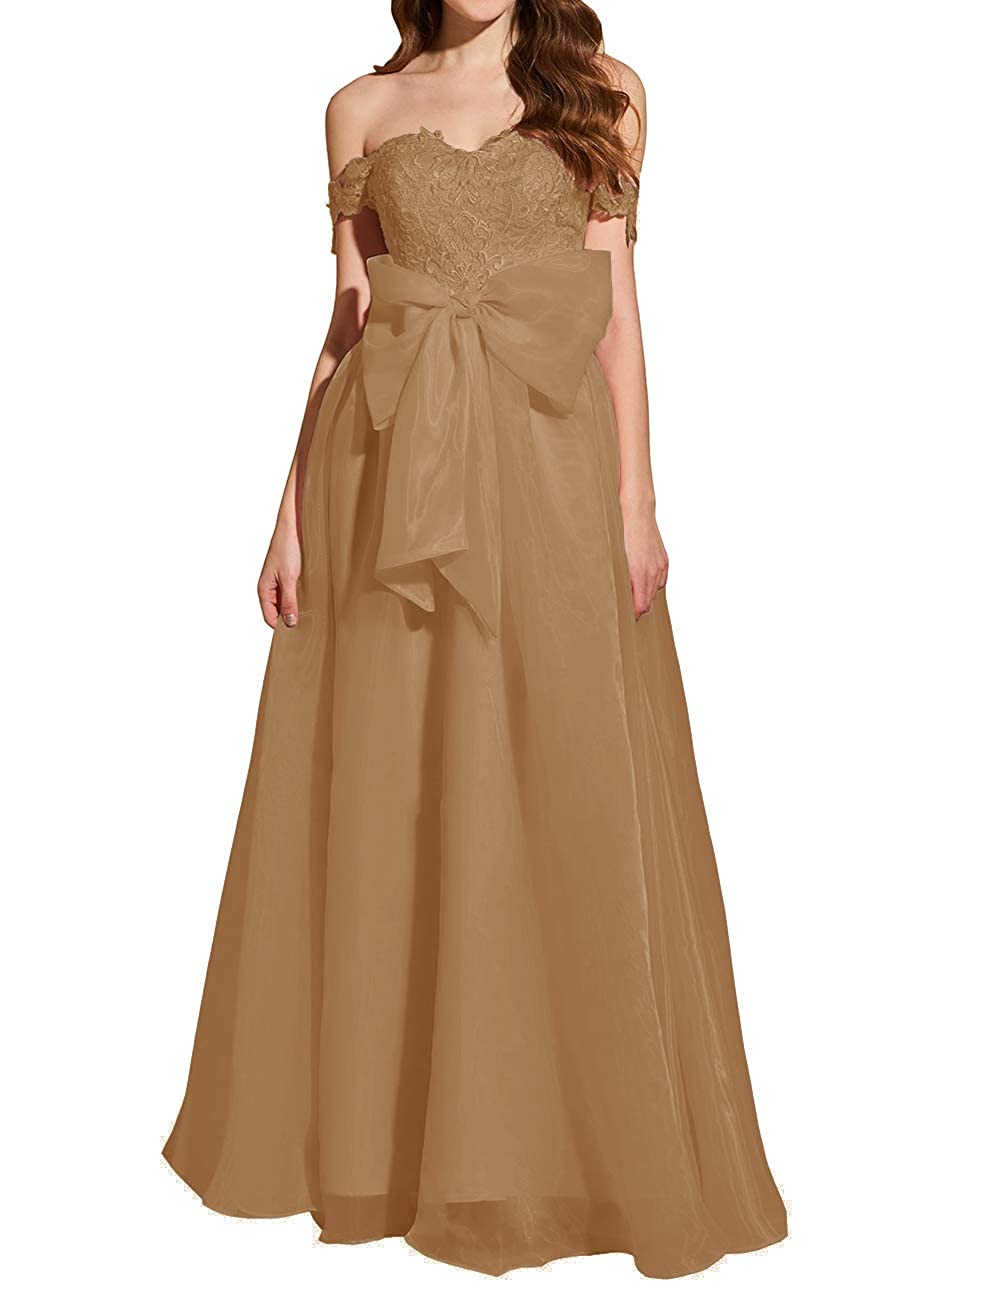 Brown Uther Formal Prom Dresses Off The Shoulder Appliques Long Evening Party Gowns Organza